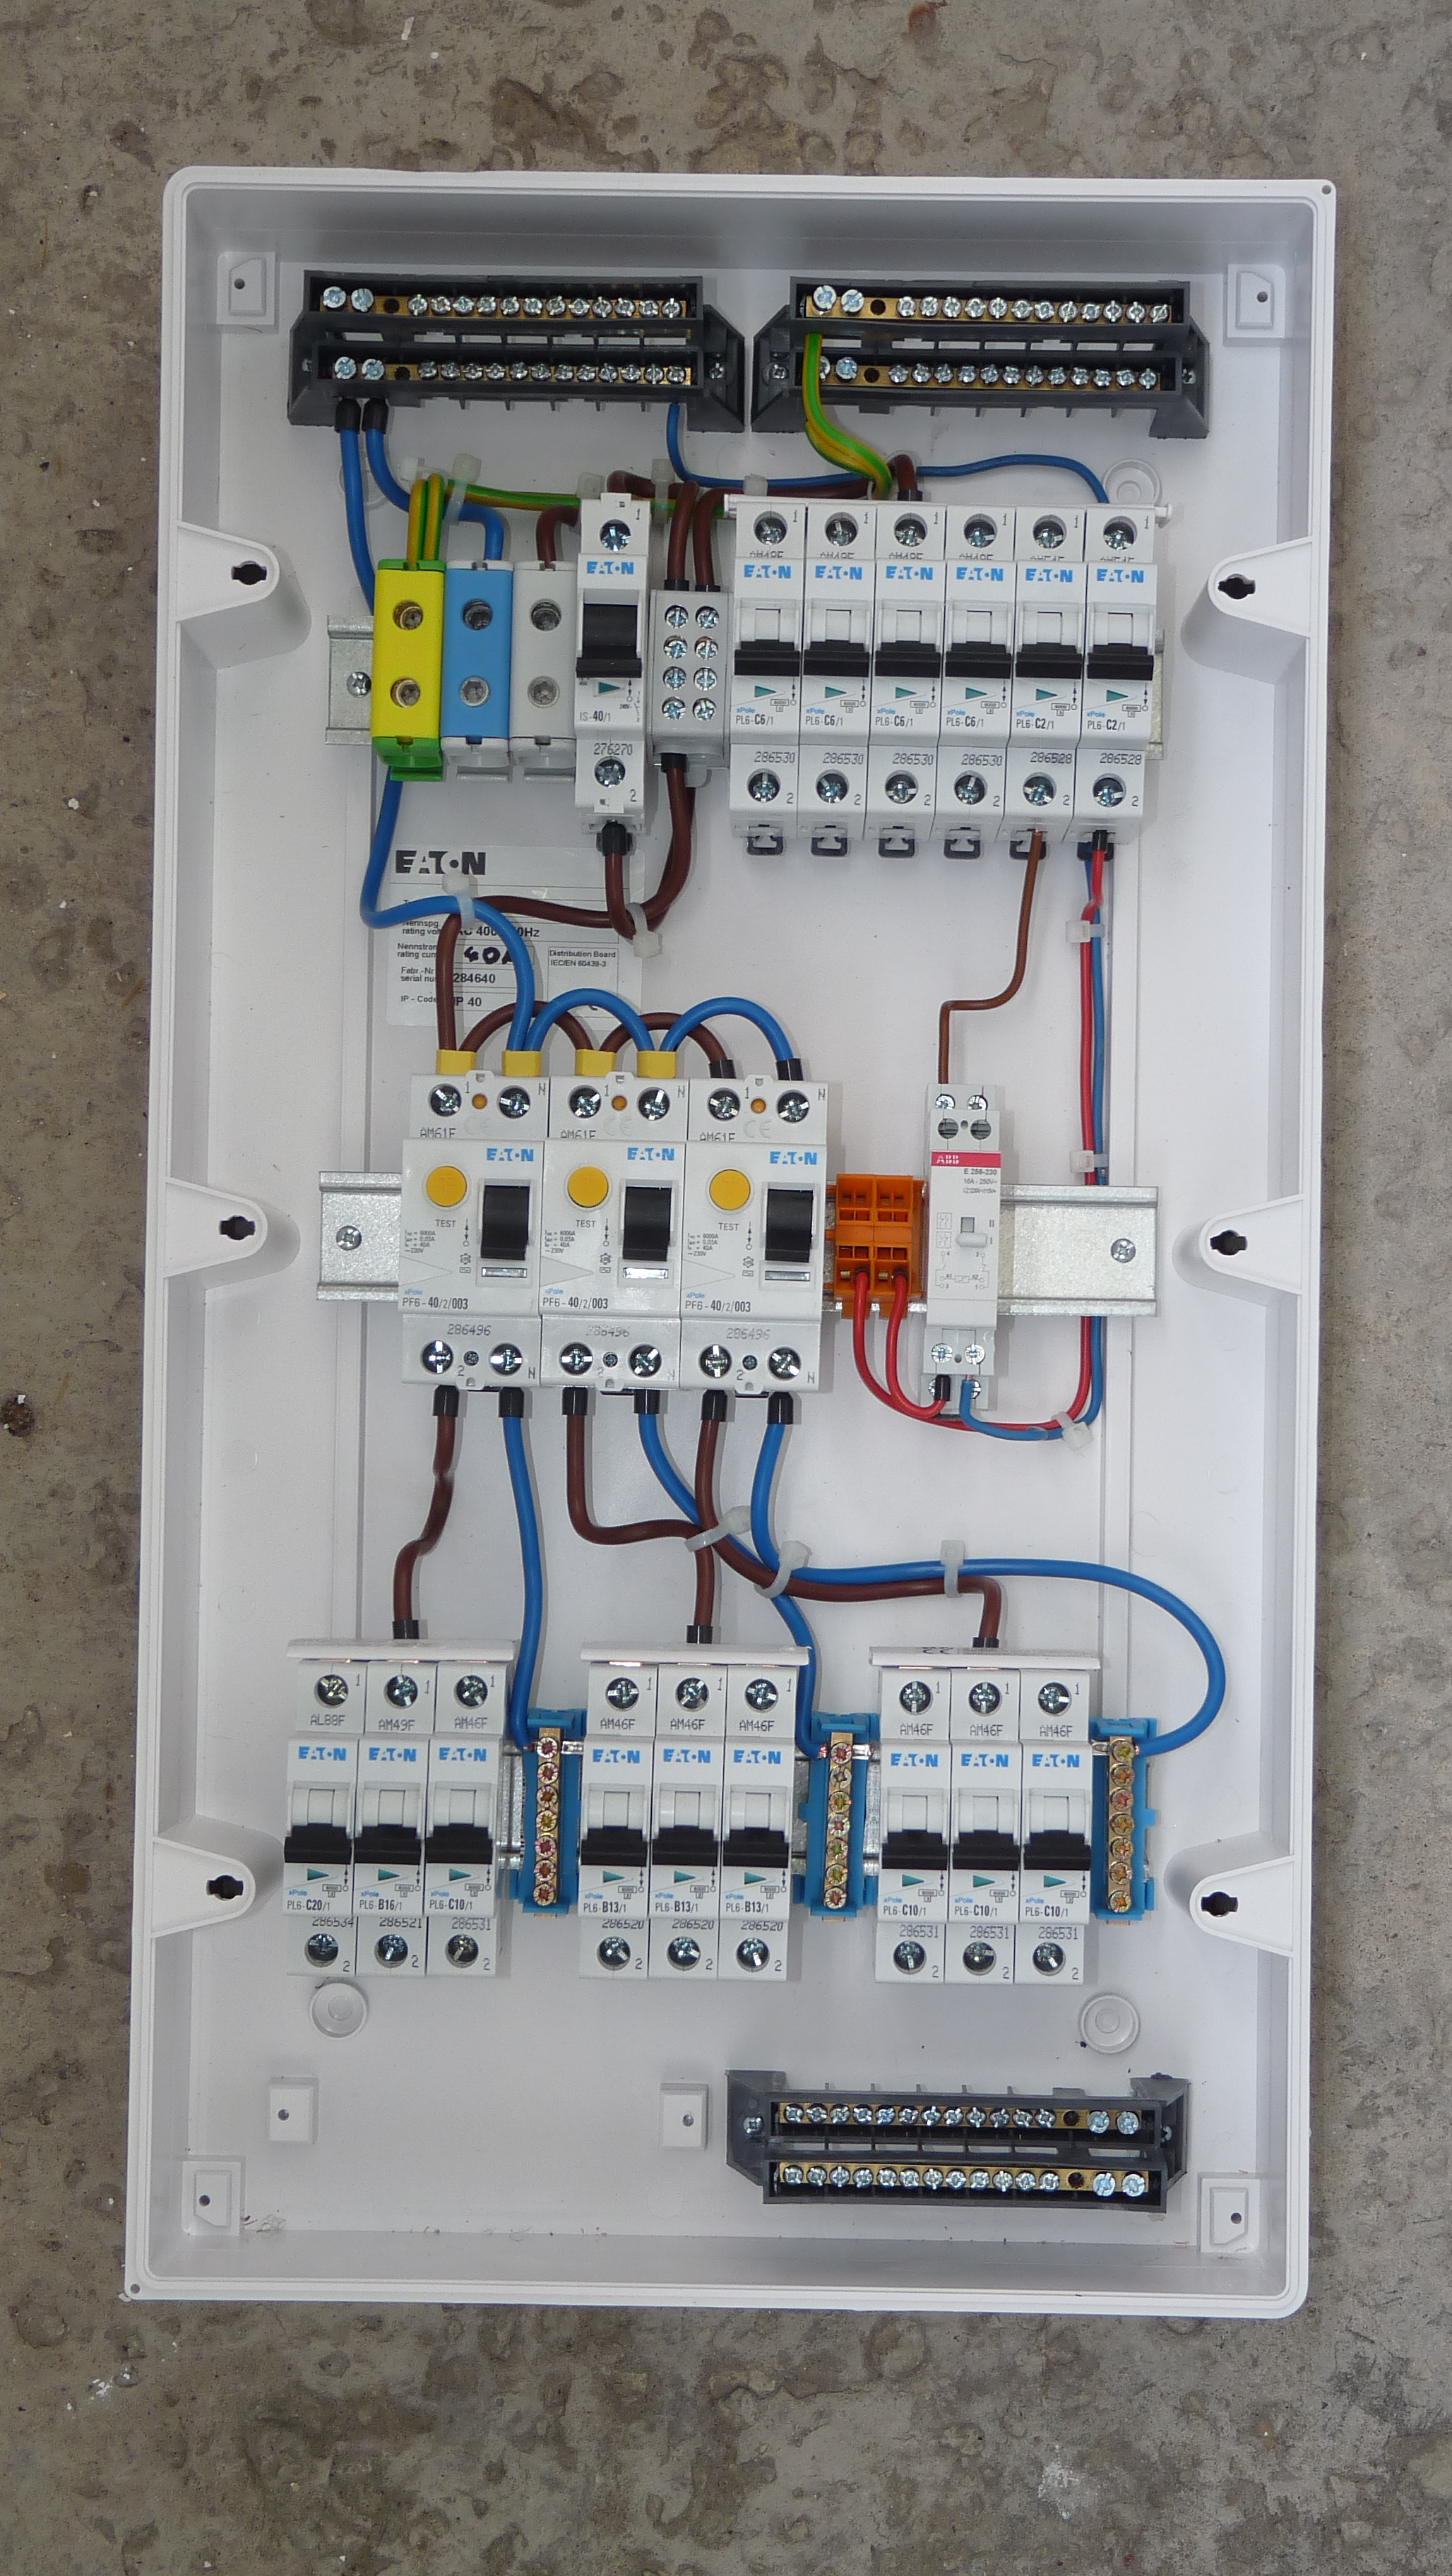 Phase 1 Fuse Box Wiring Library 150 Vacuum Diagram Likewise Electric Baseboard Heater Complete A Hnc In Electrical And Electronic Engineering At Bridgend College Now